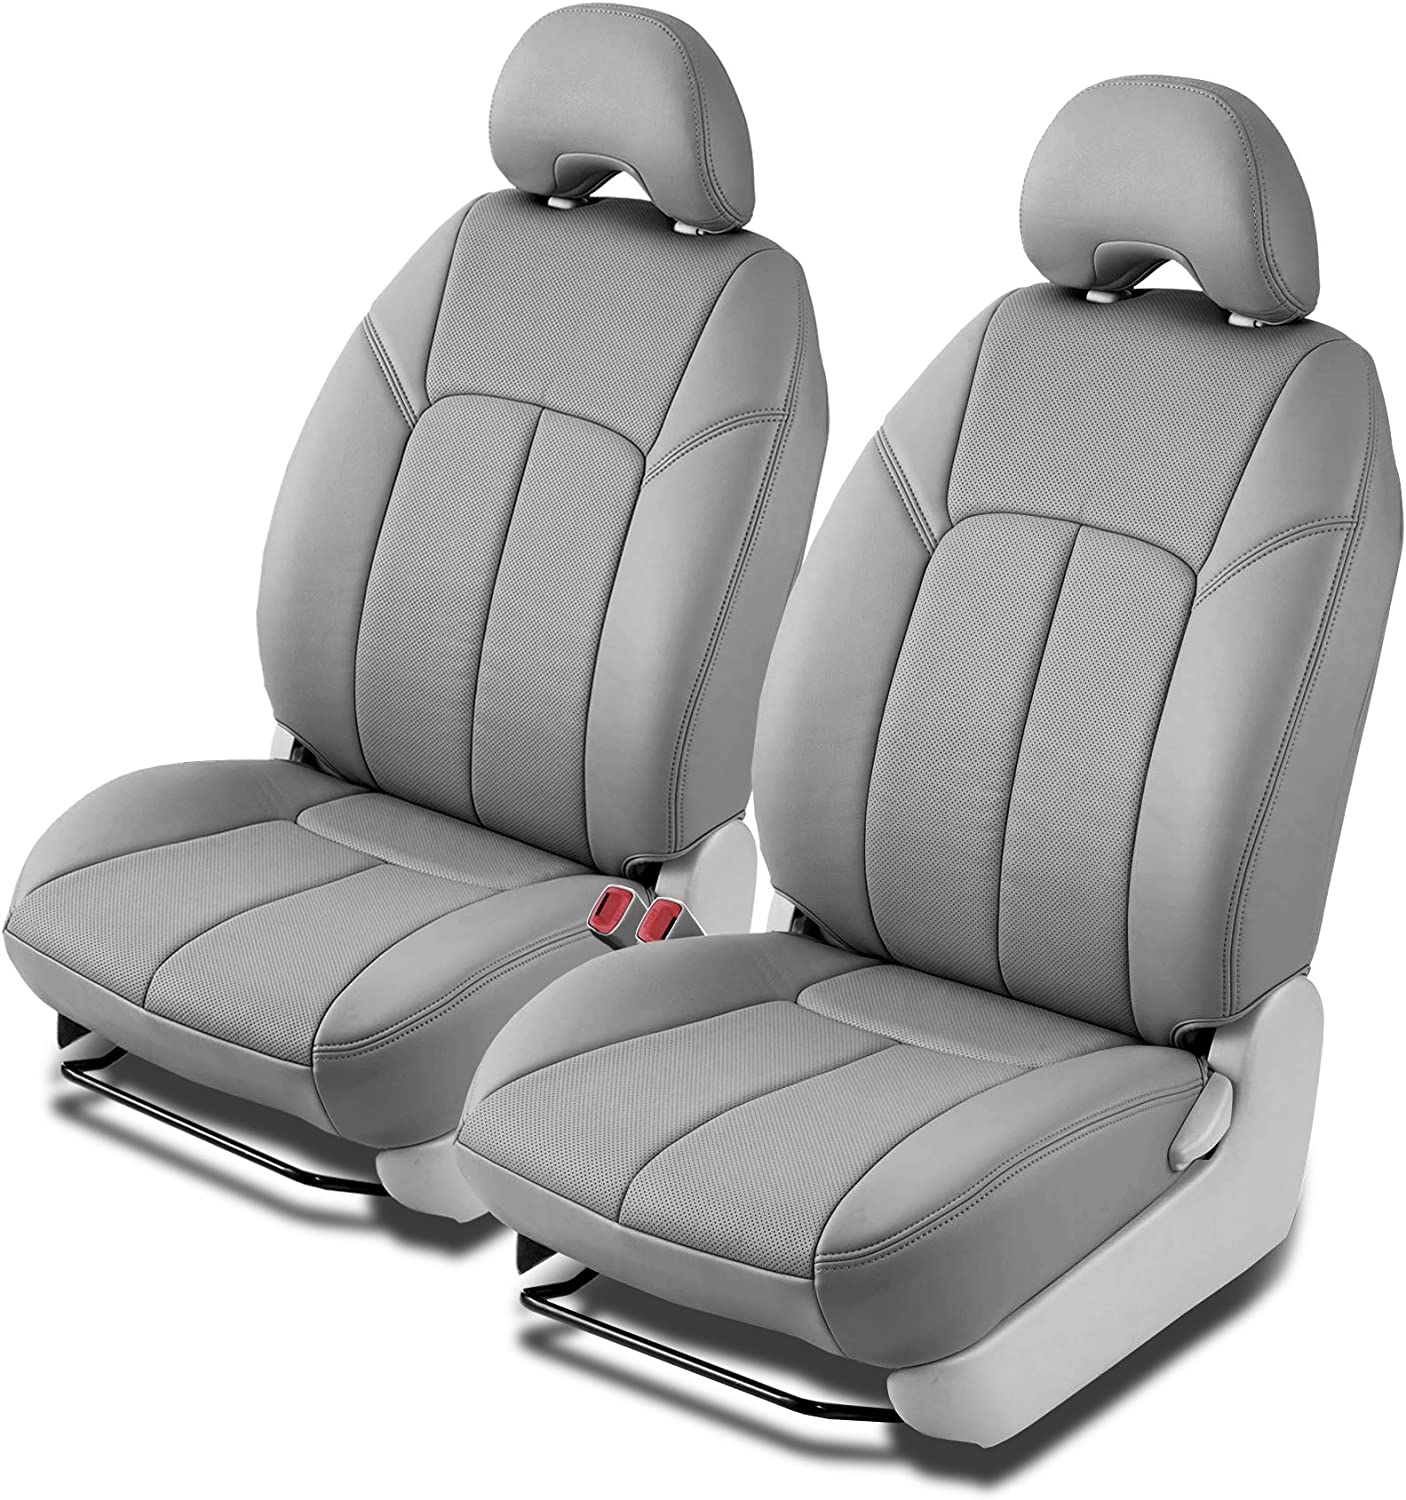 Clazzio 722821gry Grey Leather Front Row Seat Cover for Ford F150 Super Cab